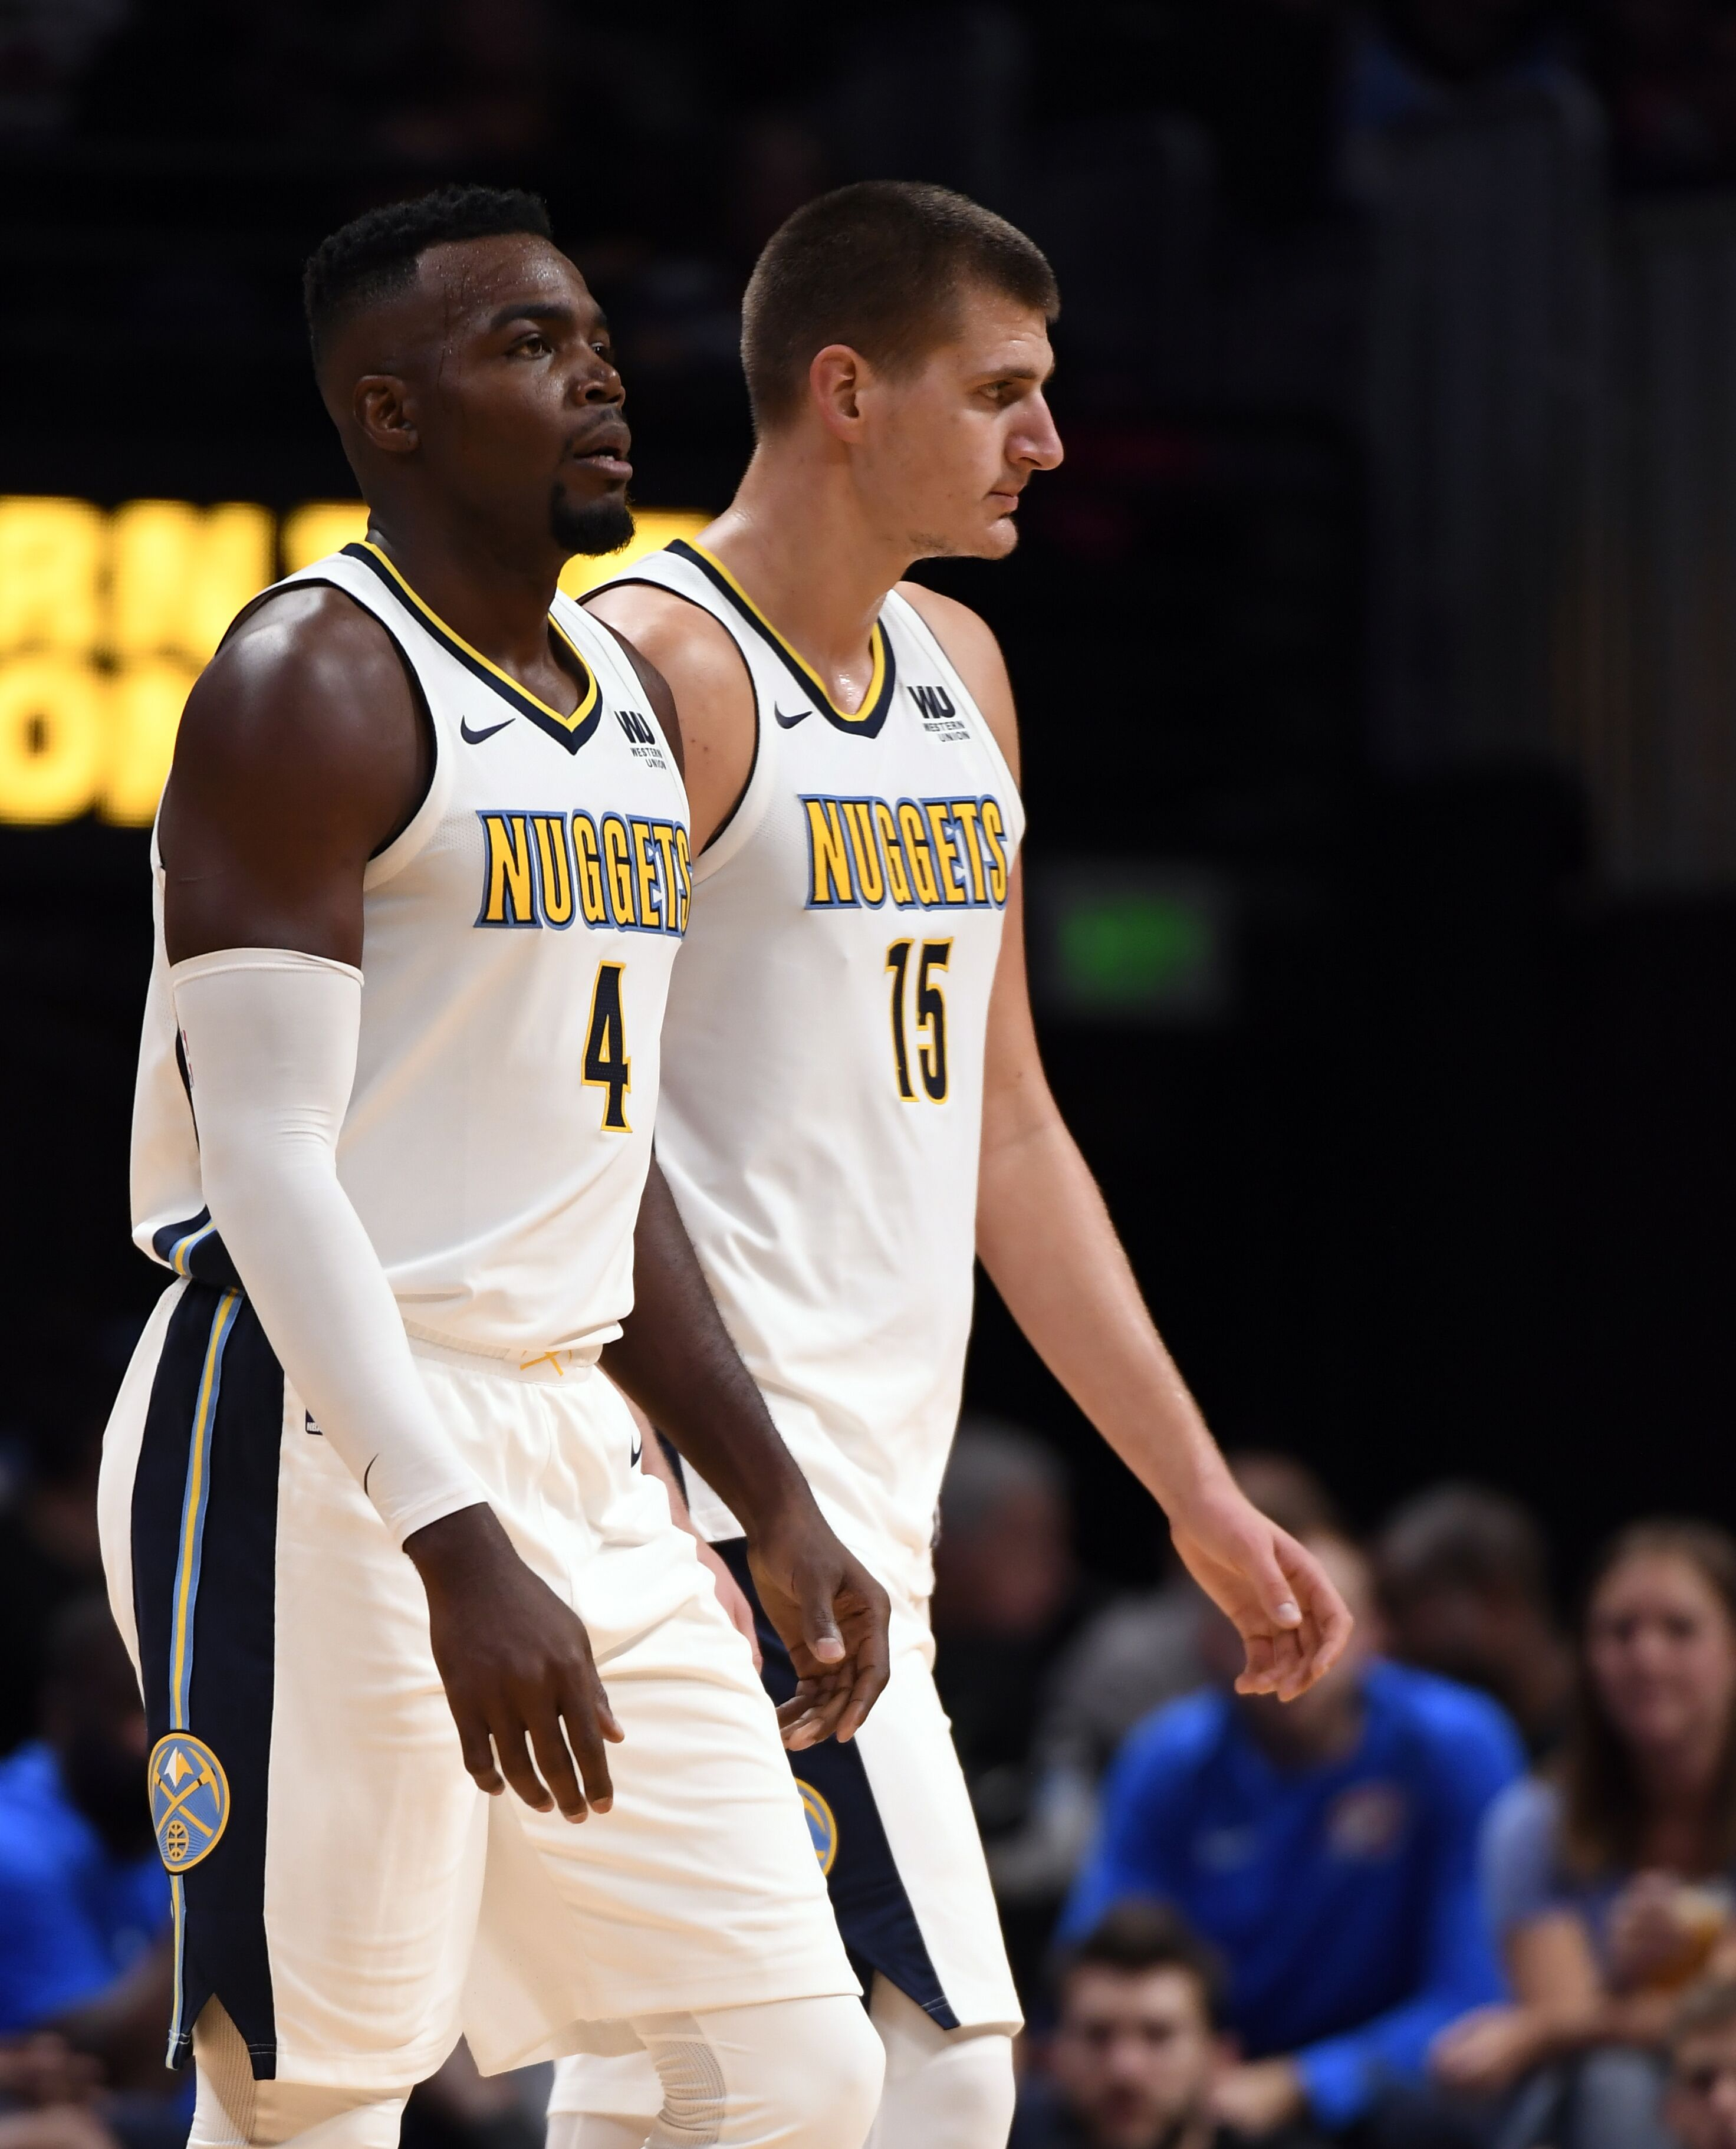 Nuggets Rumors: Prediction Of The Denver Nuggets' 2017-2018 Season